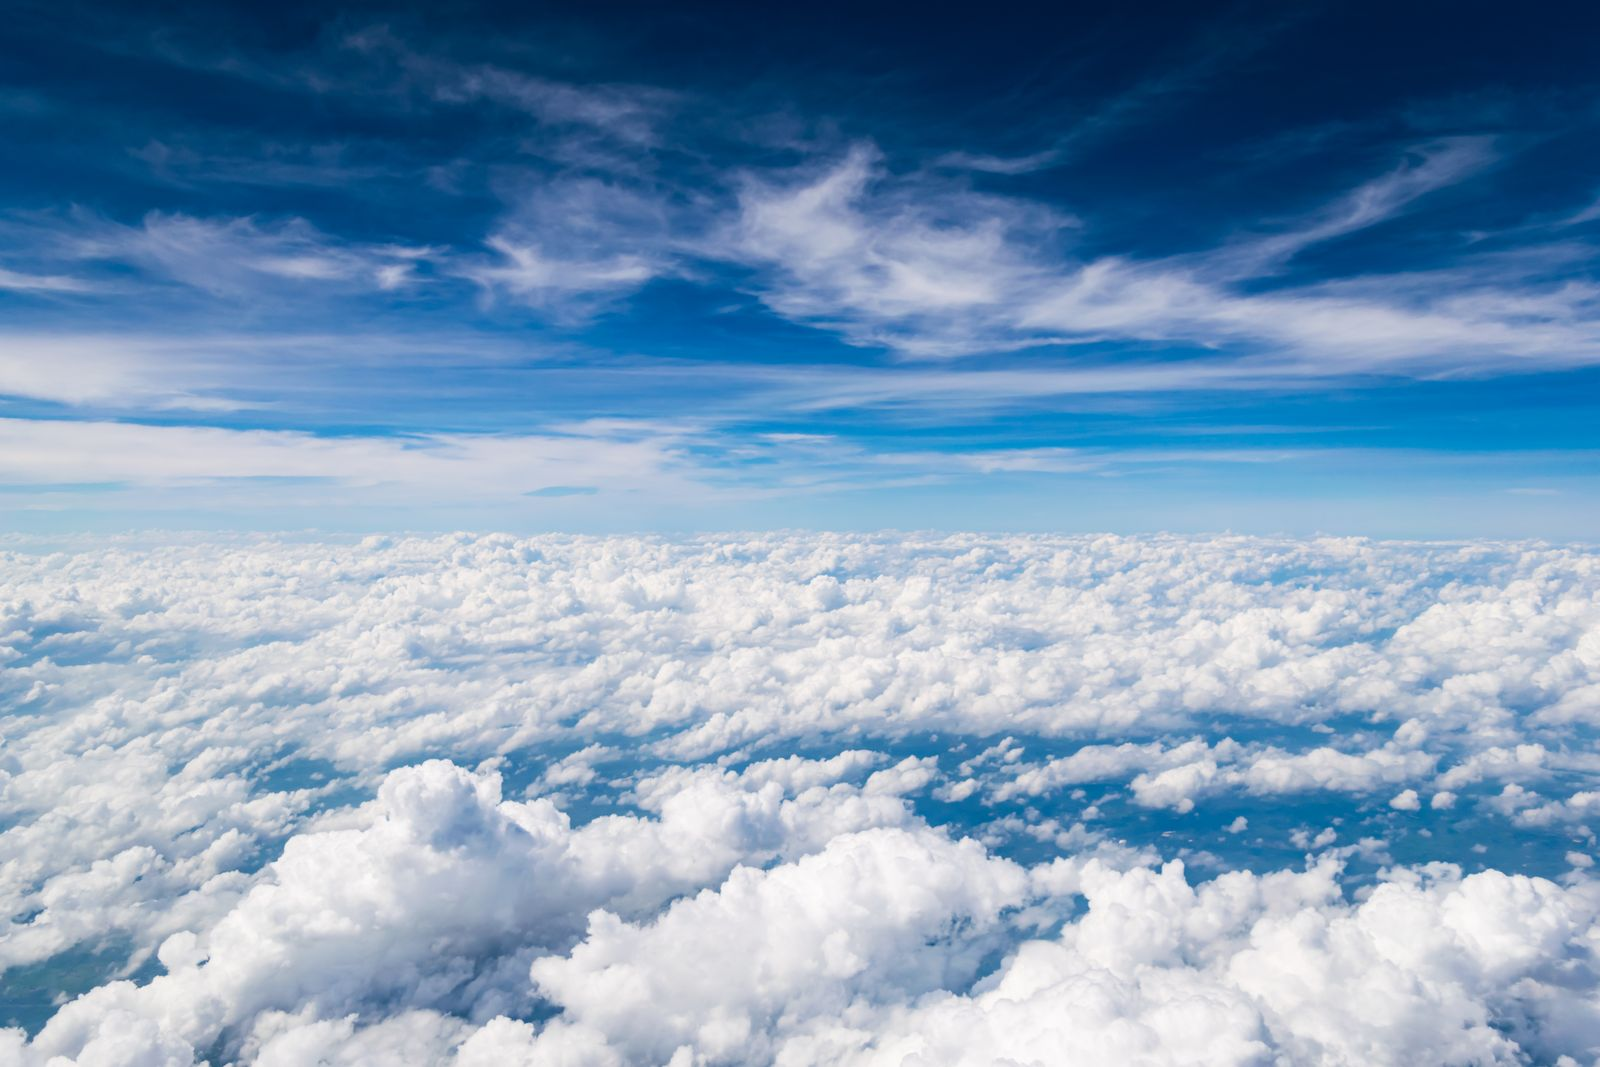 Cloud texture and blue sky